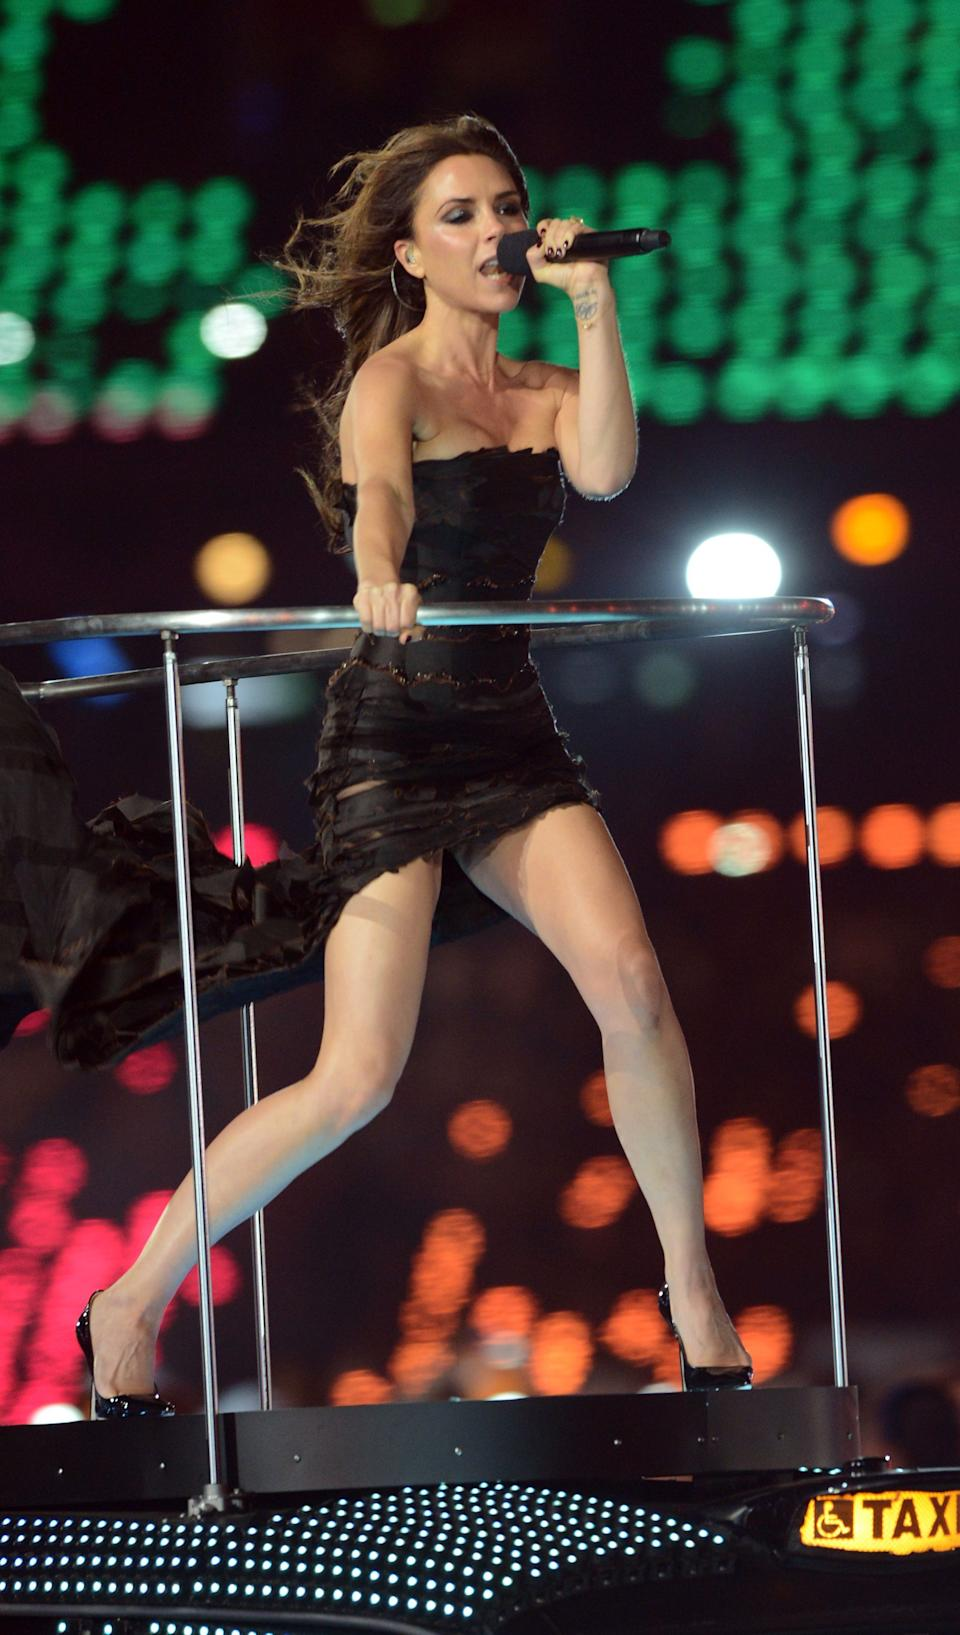 Victoria Beckham of The Spice Girls performs during the closing ceremony of the London 2012 Olympic games, London   (Photo by Anthony Devlin/PA Images via Getty Images)